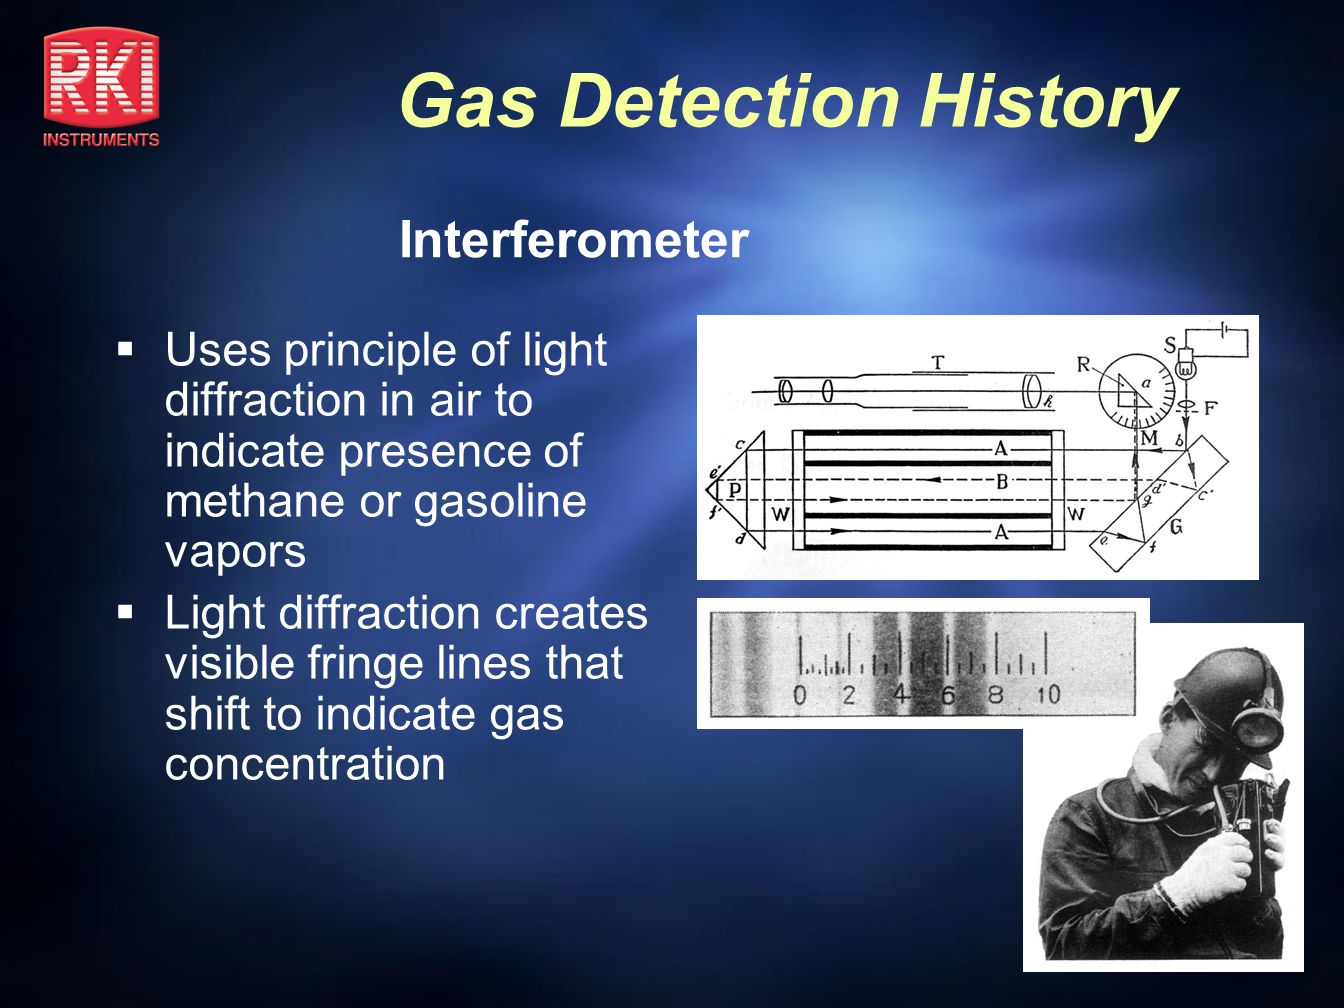 Interferometer Uses principle of light diffraction in air to indicate presence of methane or gasoline vapors.